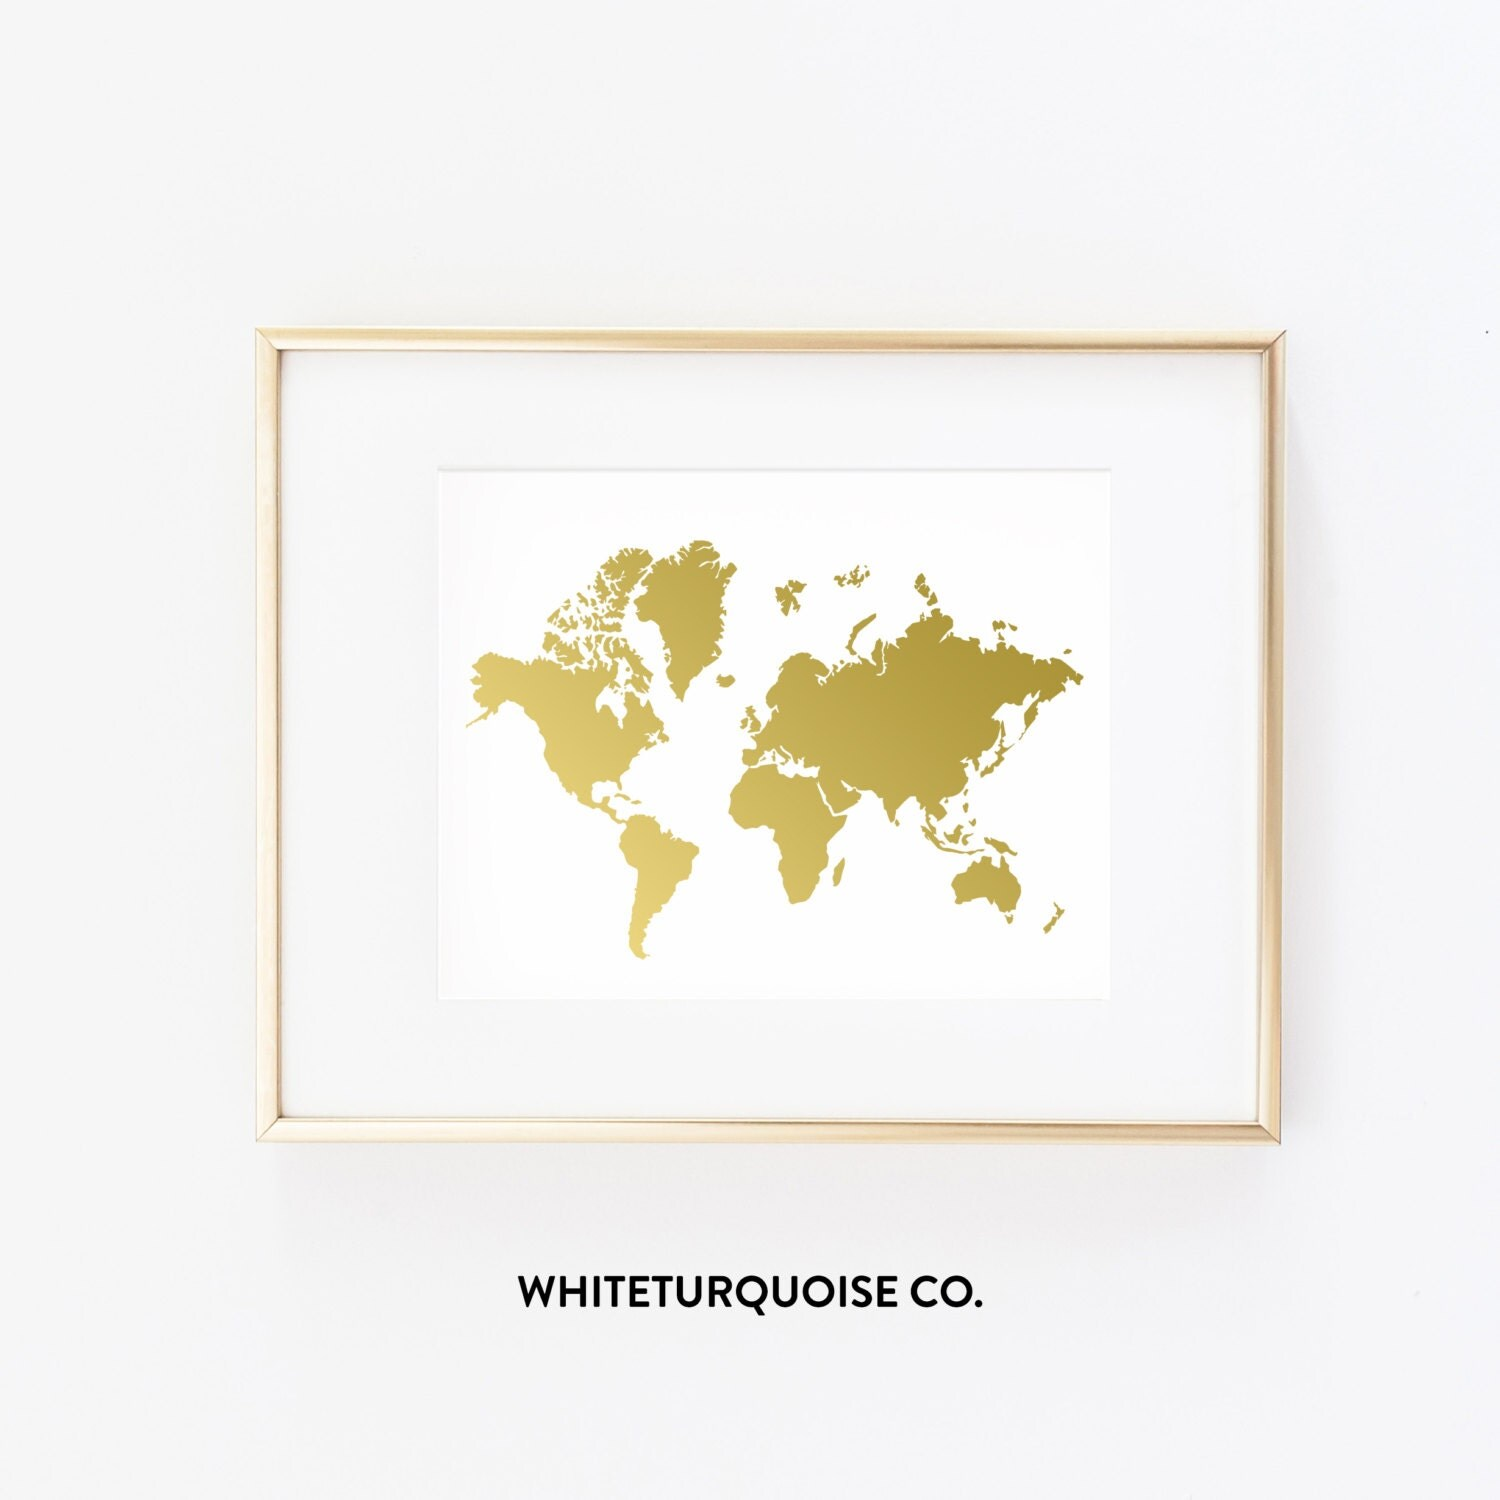 Wanderlust world map in gold foil print 8x10 for 8x10 office design